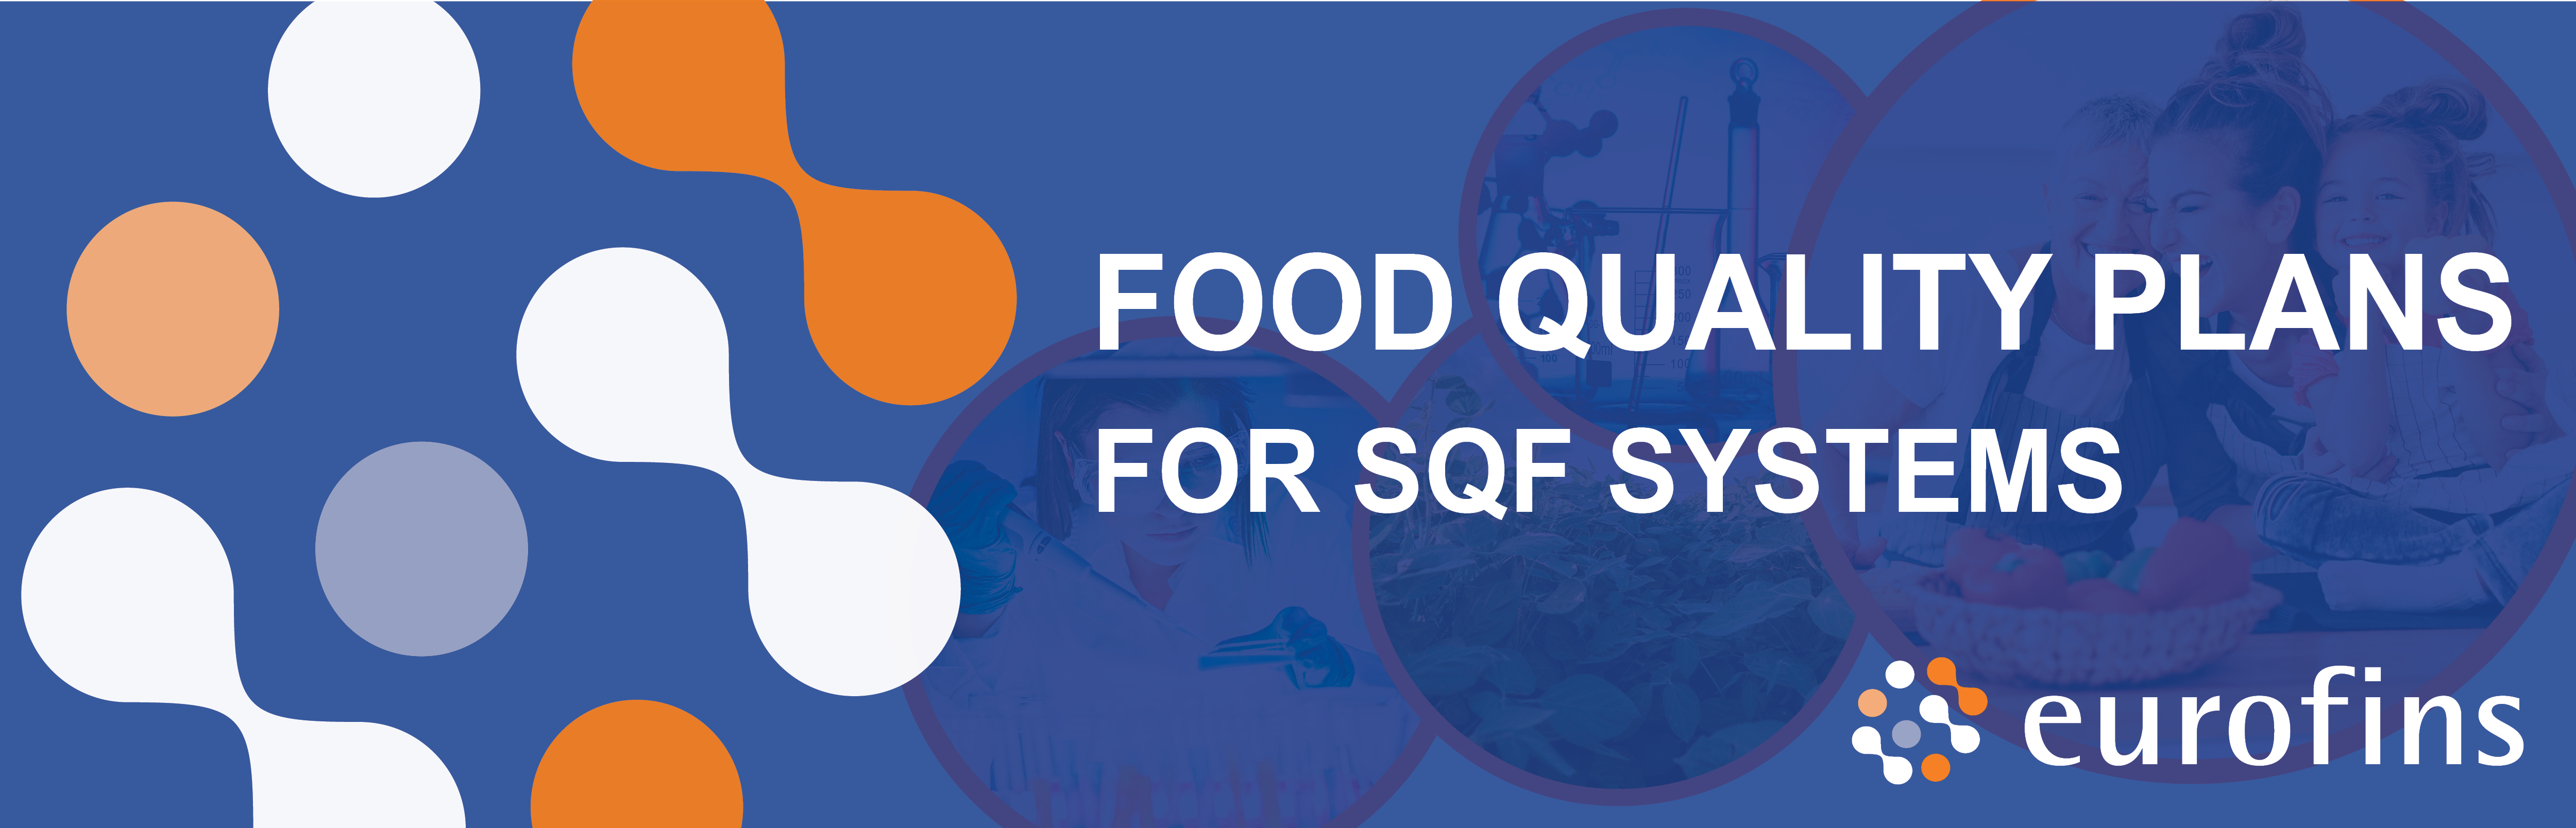 Food Quality Plans for SQF Systems